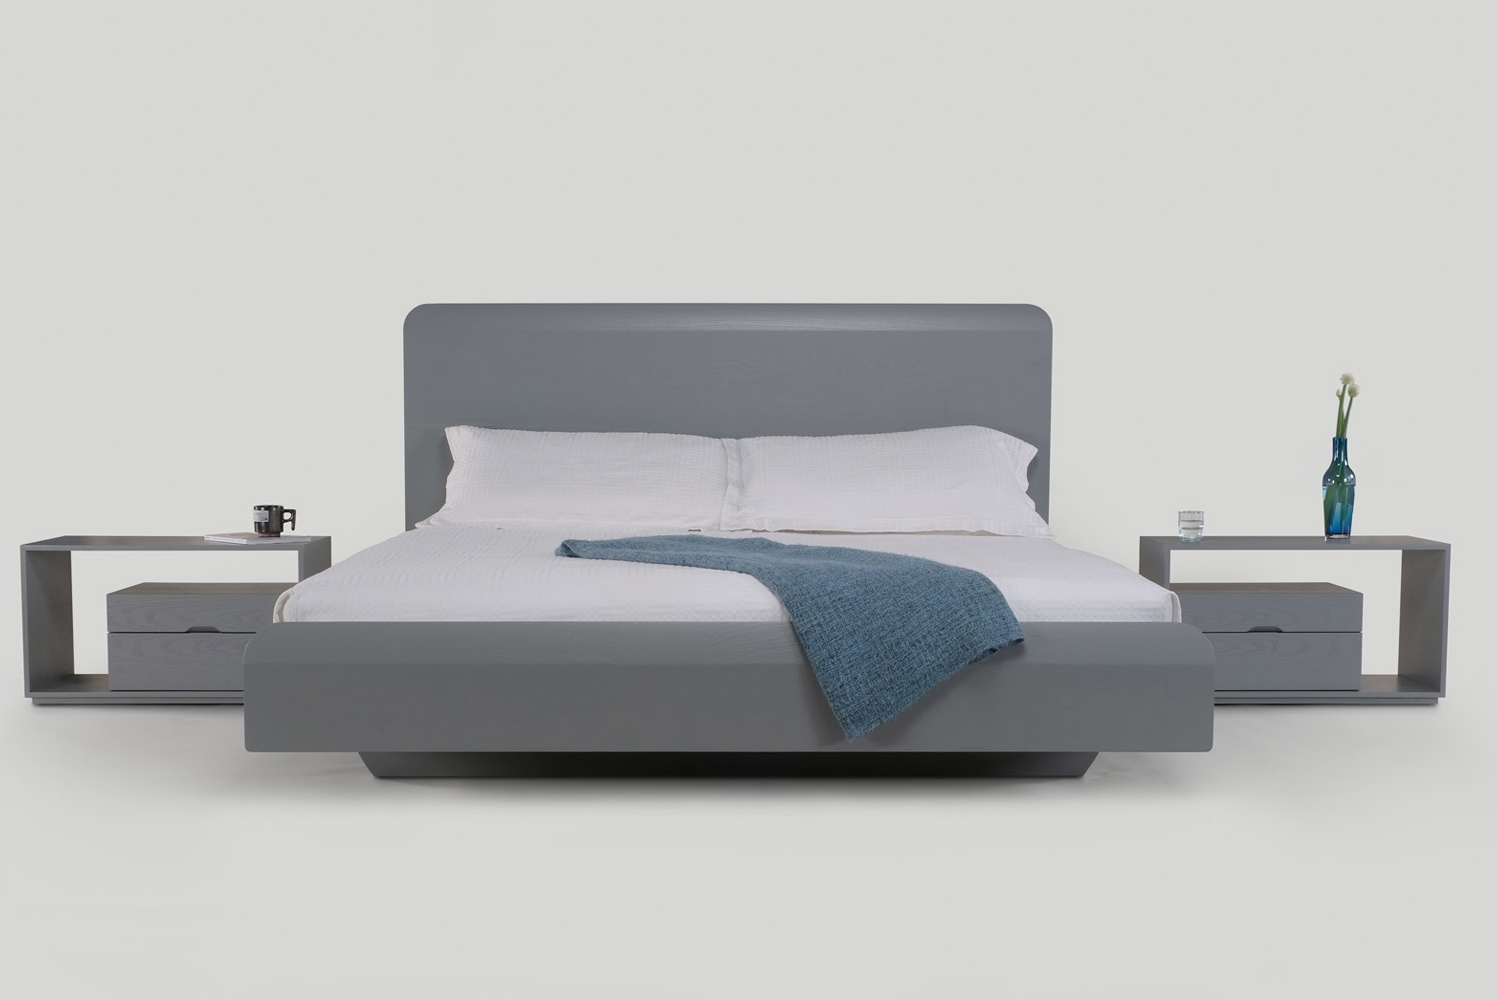 The Lineground bed coordinates with the nightstand and bureau options and the other accompaniments of the Lineground collection.